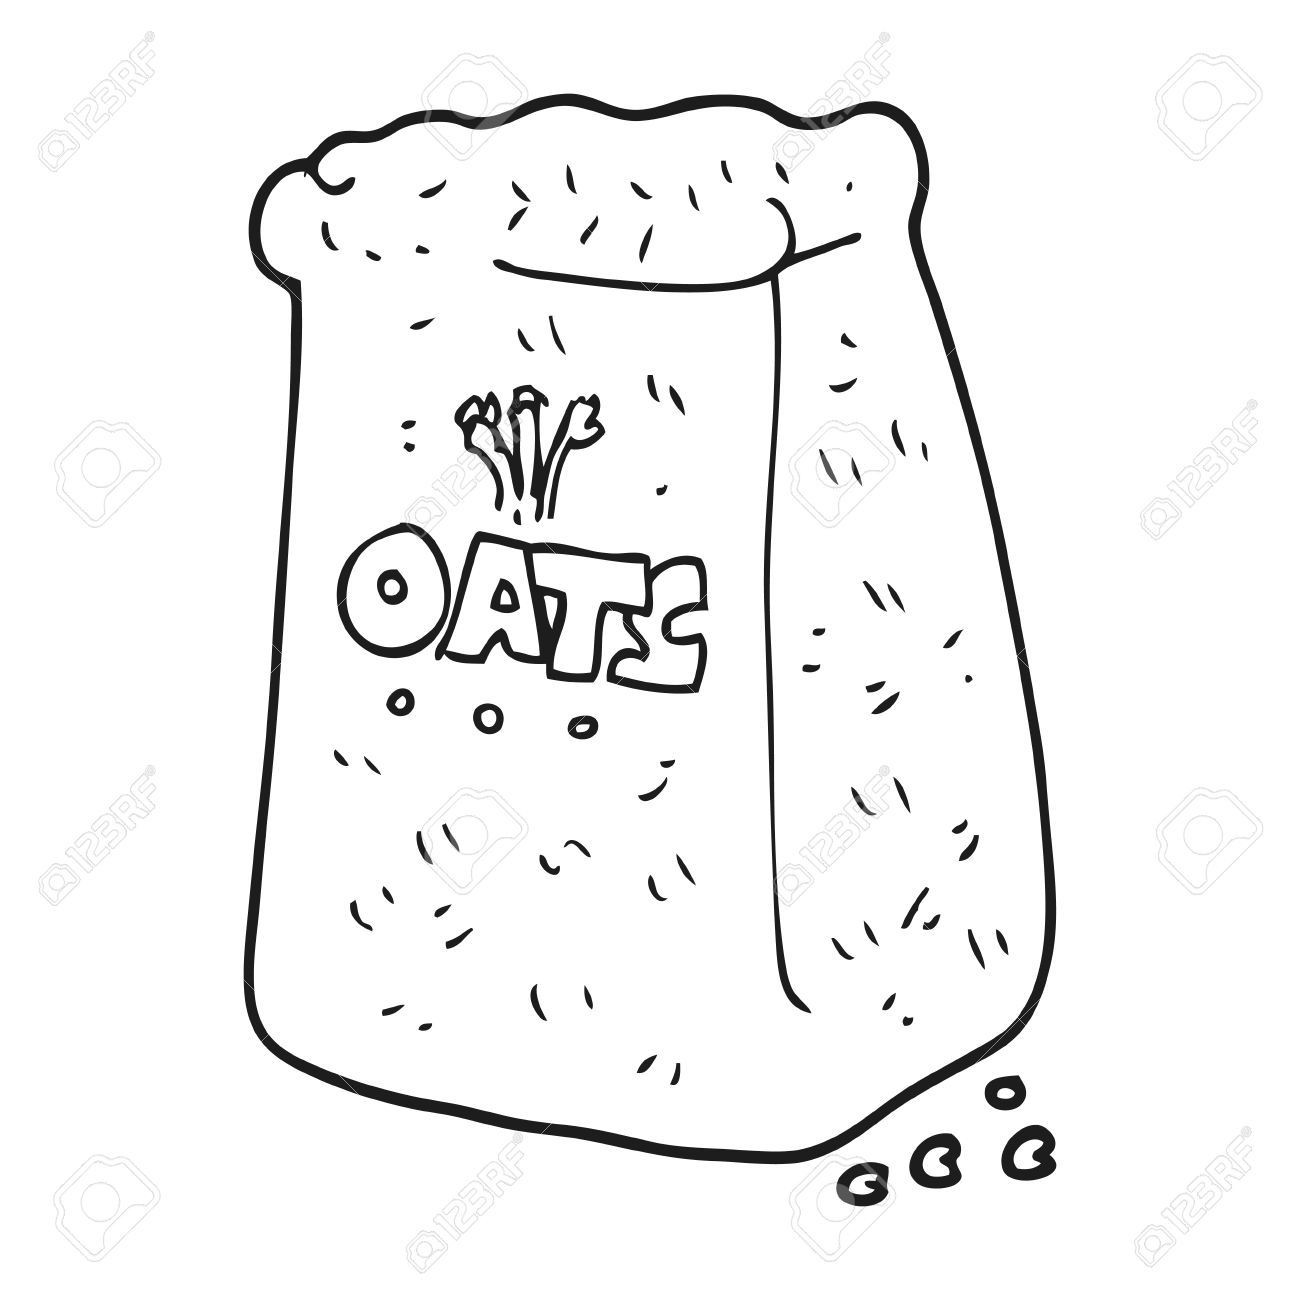 Black and white cartoon oats » Clipart Portal.